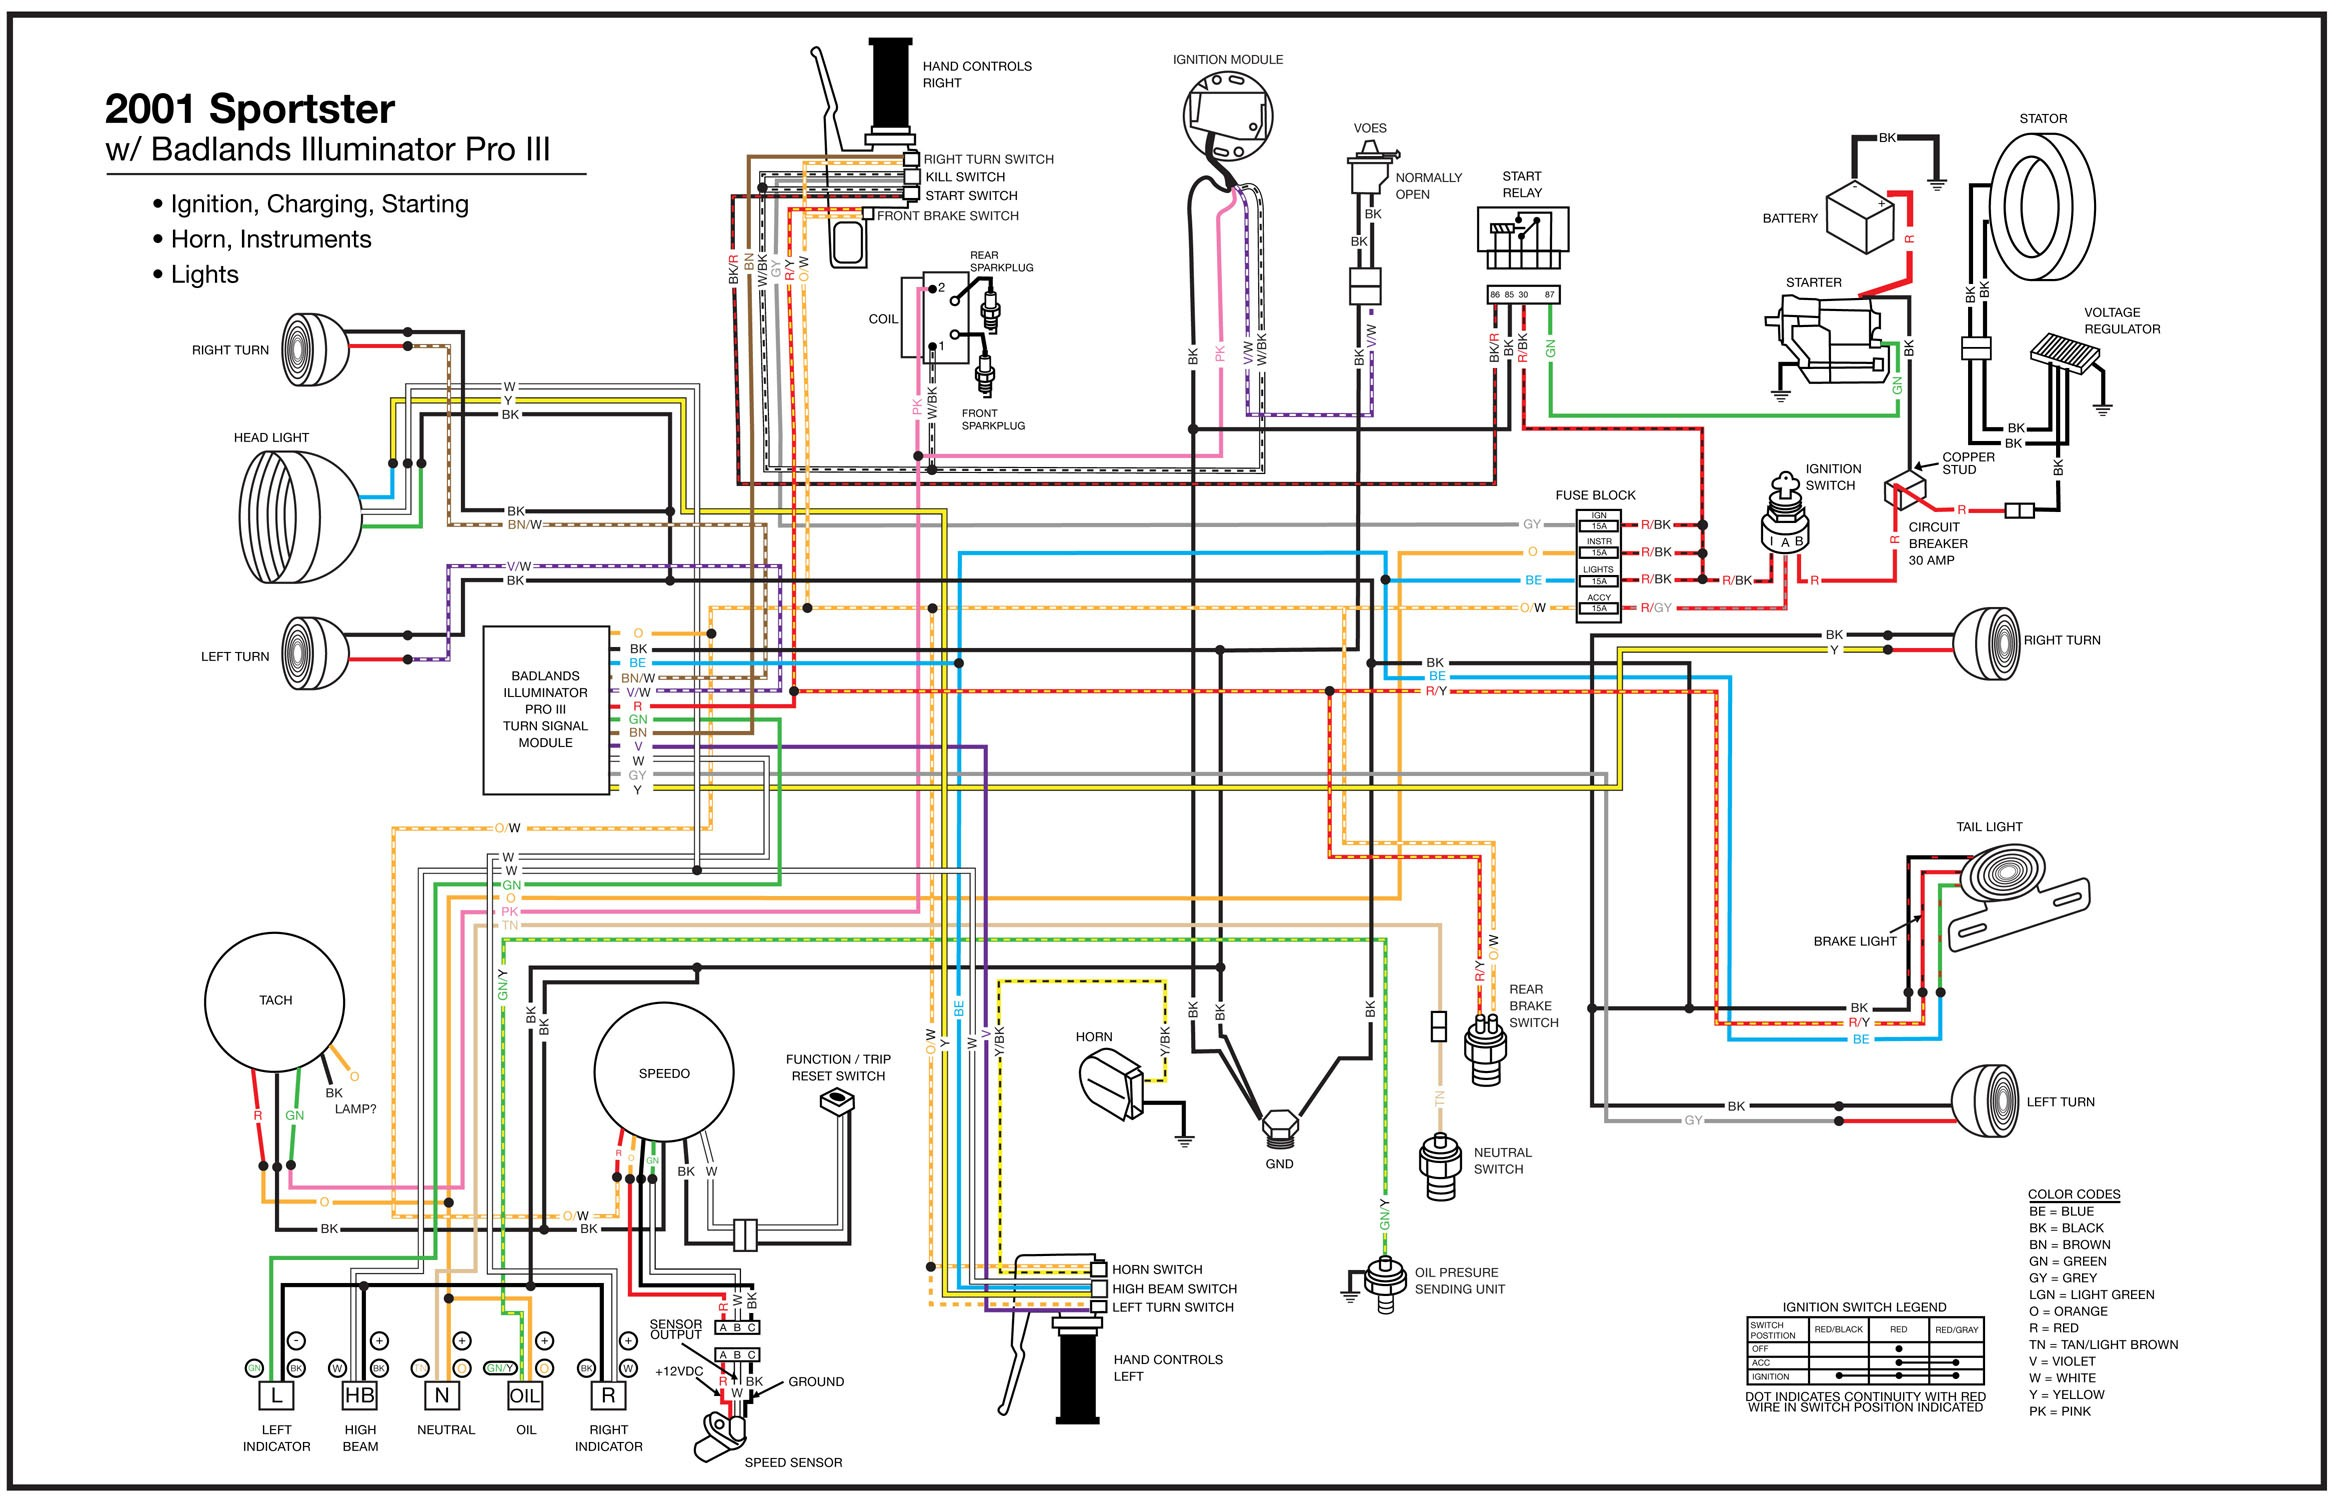 1977 Sportster Wiring Diagram | Wiring Schematic Diagram - 75 ... on harley frame diagram, harley evo diagram, harley fuel lines diagram, harley shift linkage diagram, harley headlight diagram, harley stator diagram, harley relay diagram, harley generator diagram, harley throttle cable diagram, harley rear axle diagram, harley dash wiring, harley magneto diagram, harley wiring color codes, harley fuel pump diagram, harley softail wiring harness, harley fuse diagram, harley switch diagram, harley panhead wiring, harley wiring tools,